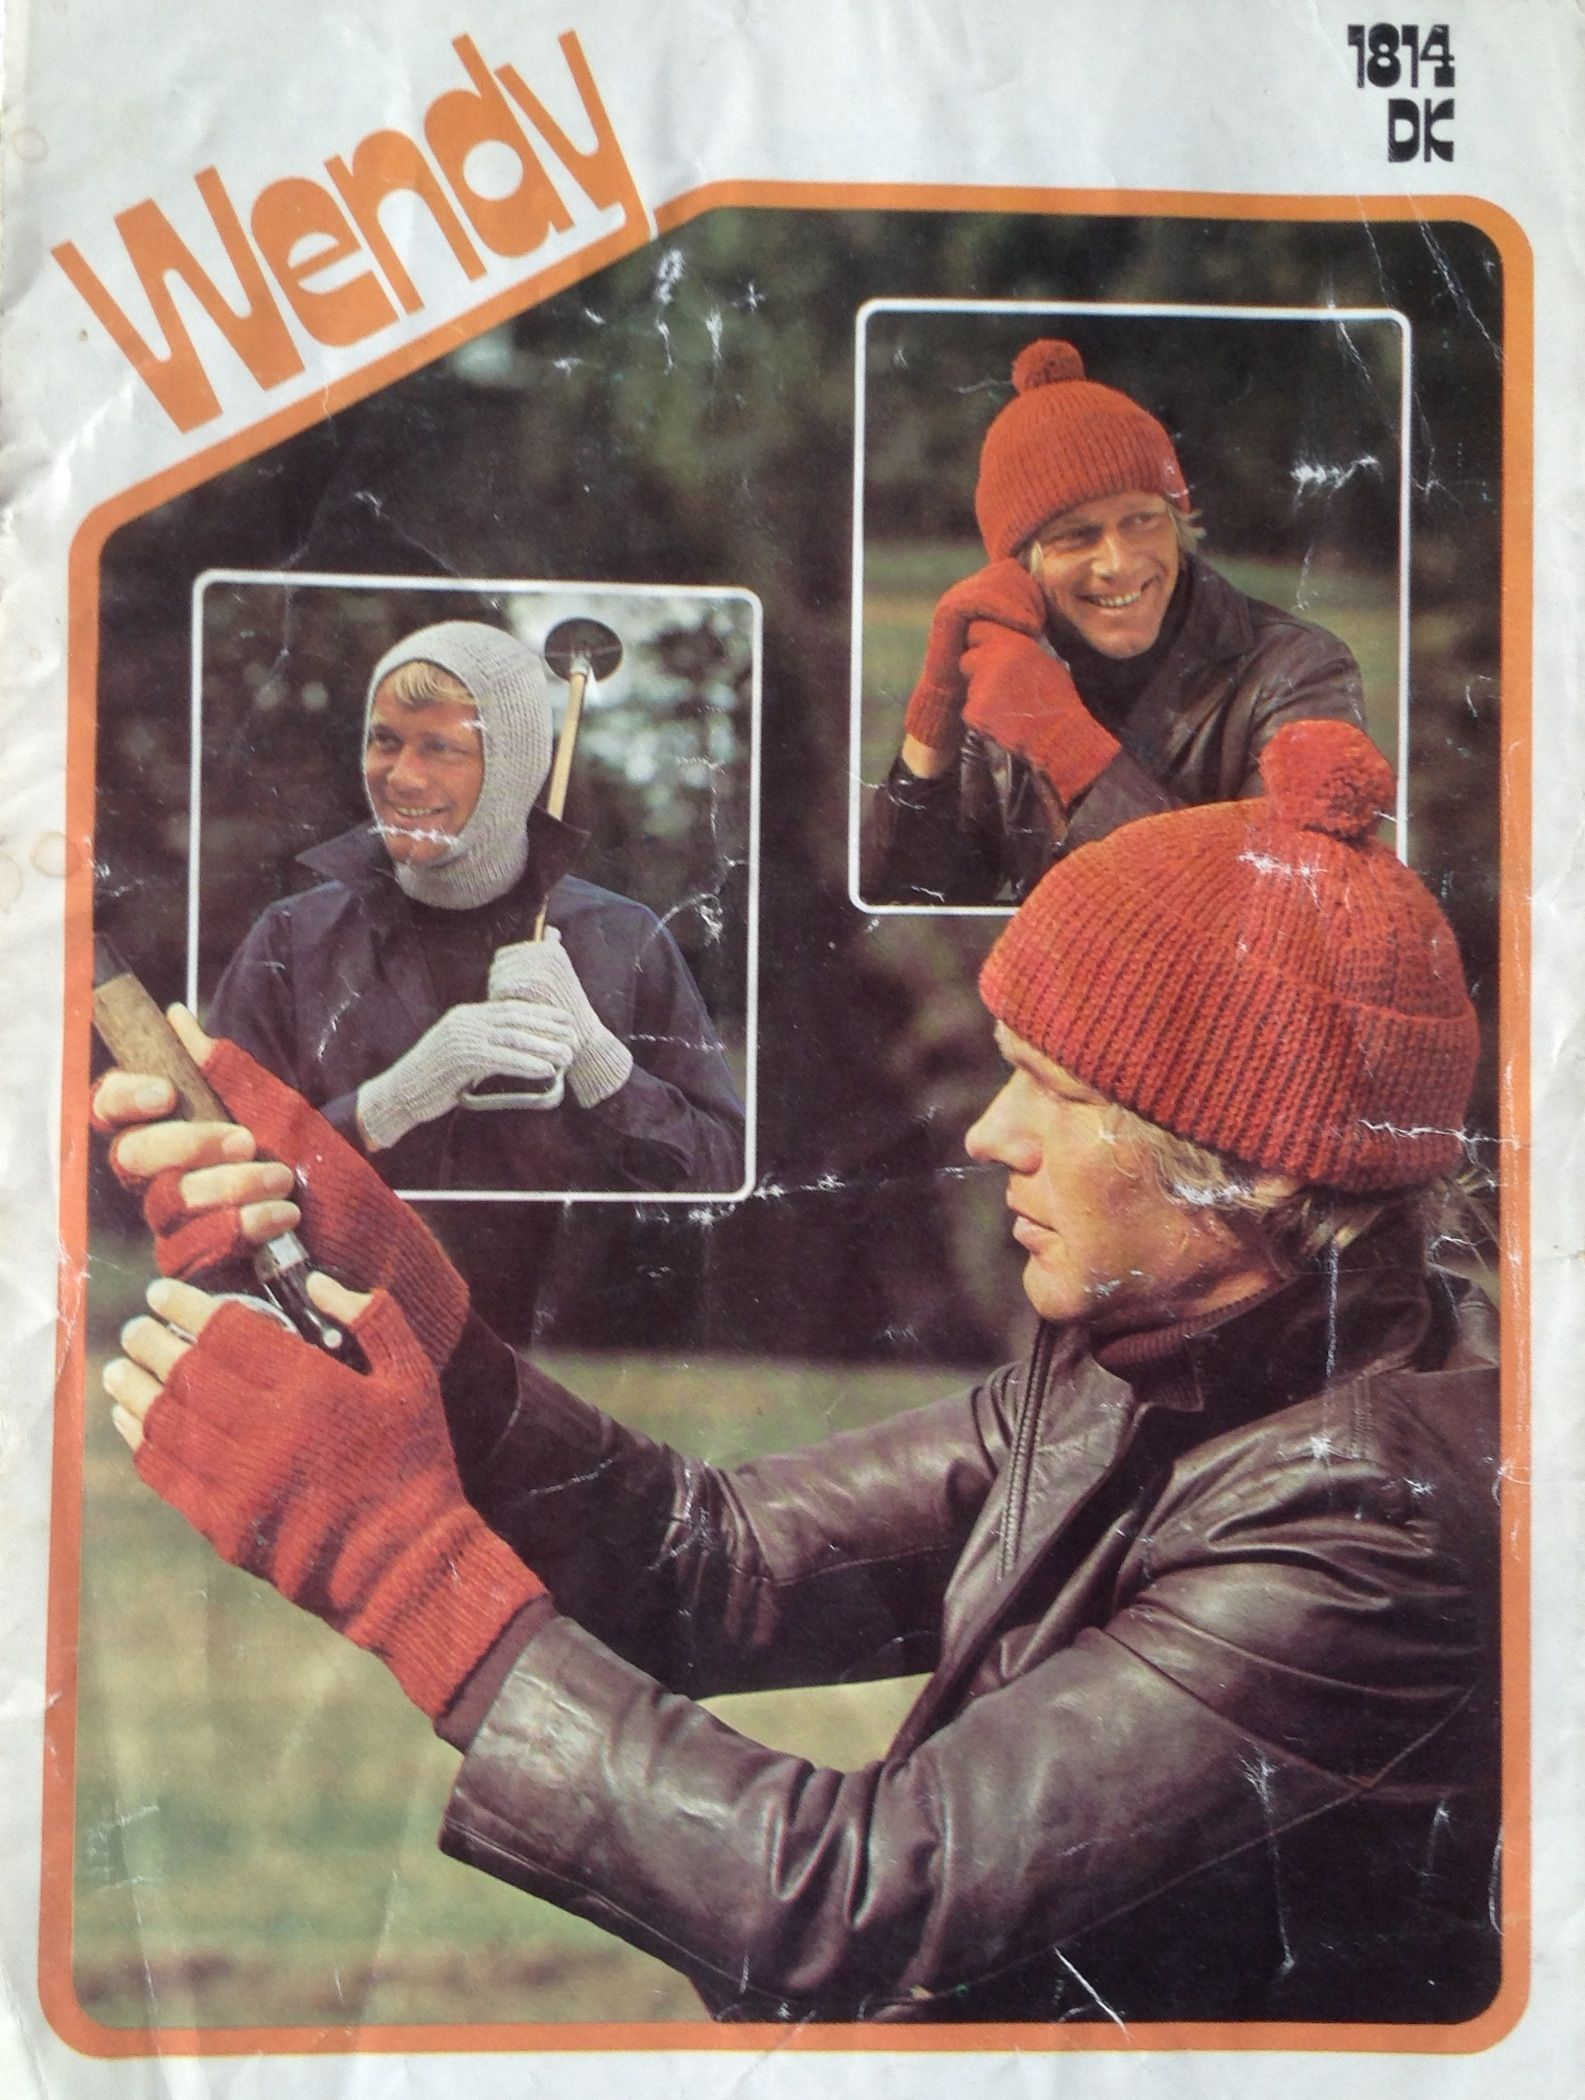 1970 Wendy Wool knitting pattern for a ribbed hat, fingerless gloves and a balaclava.